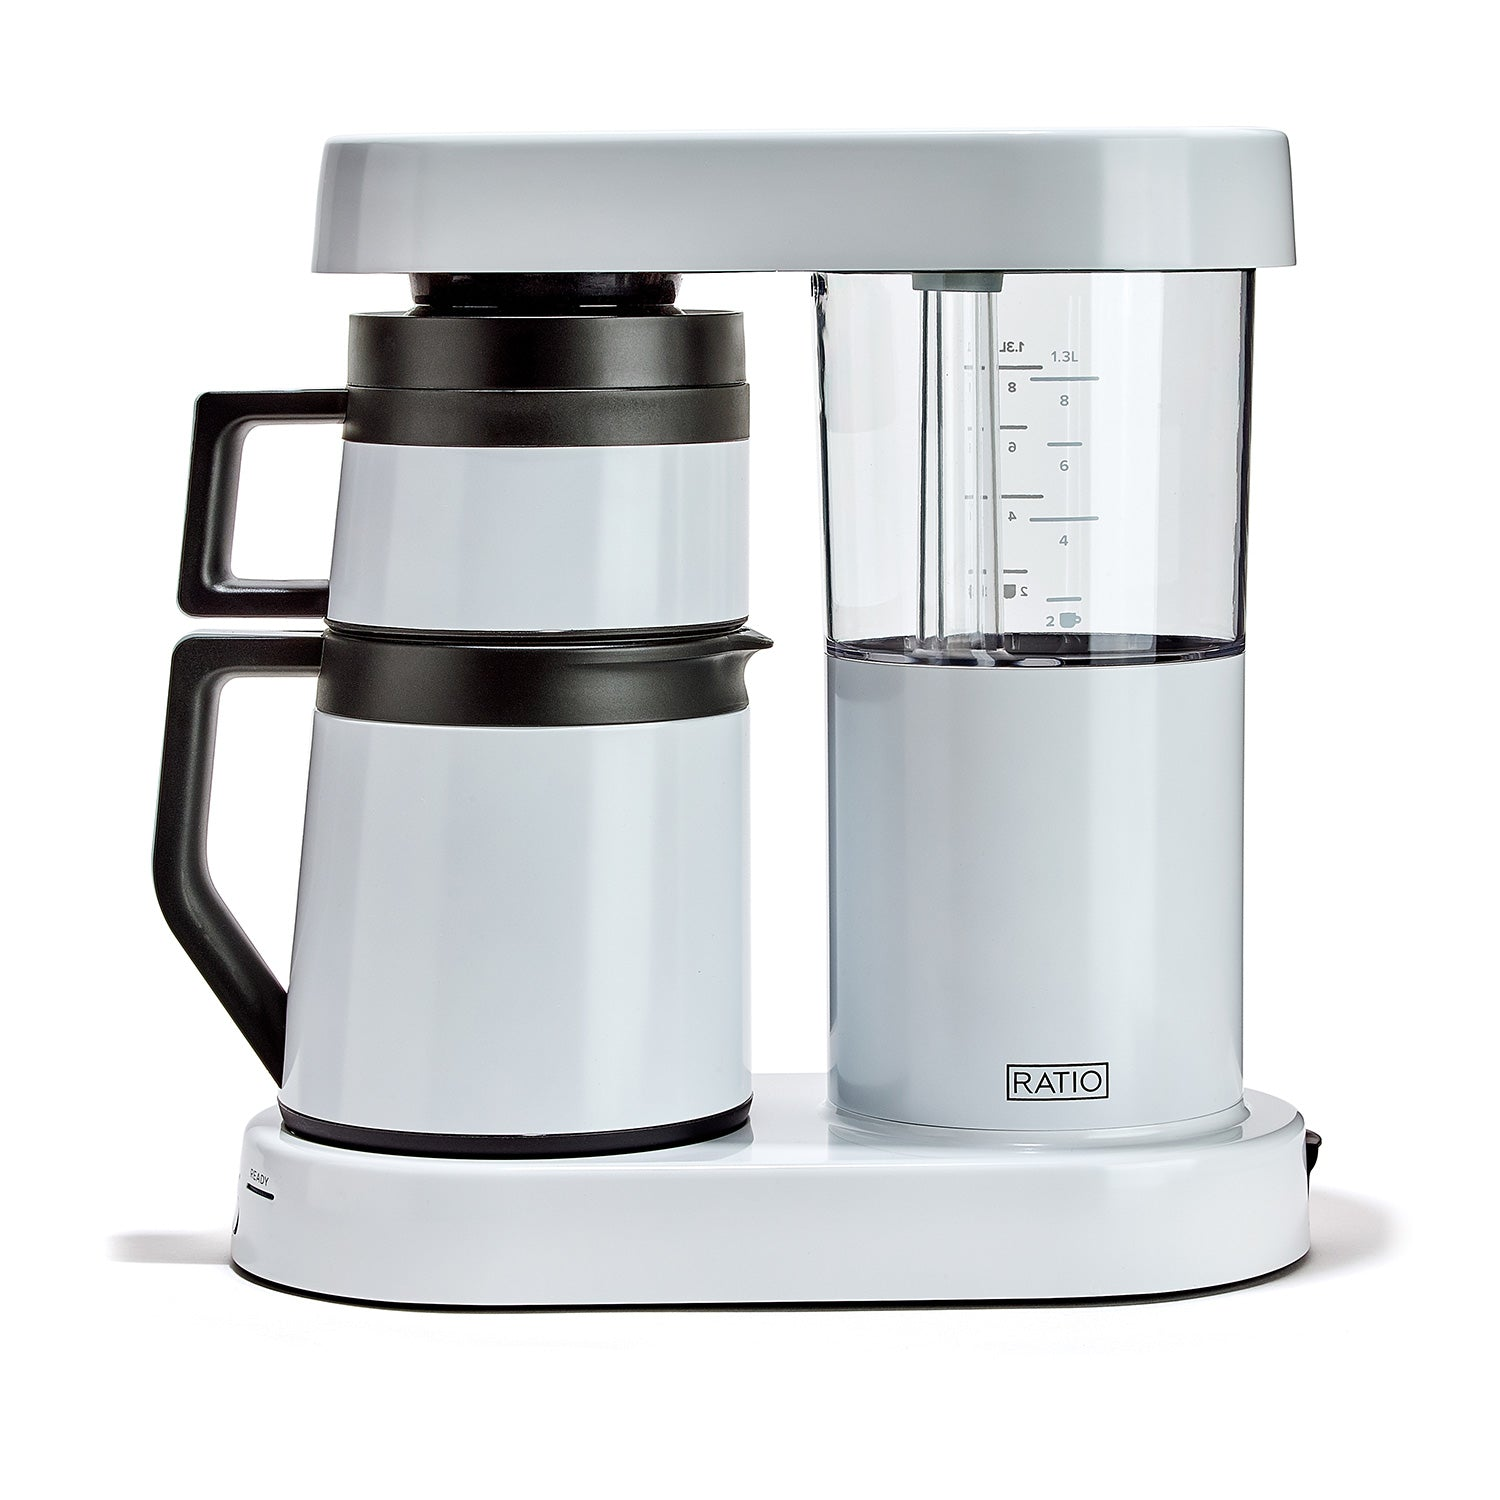 Ratio Six Coffee Maker - White